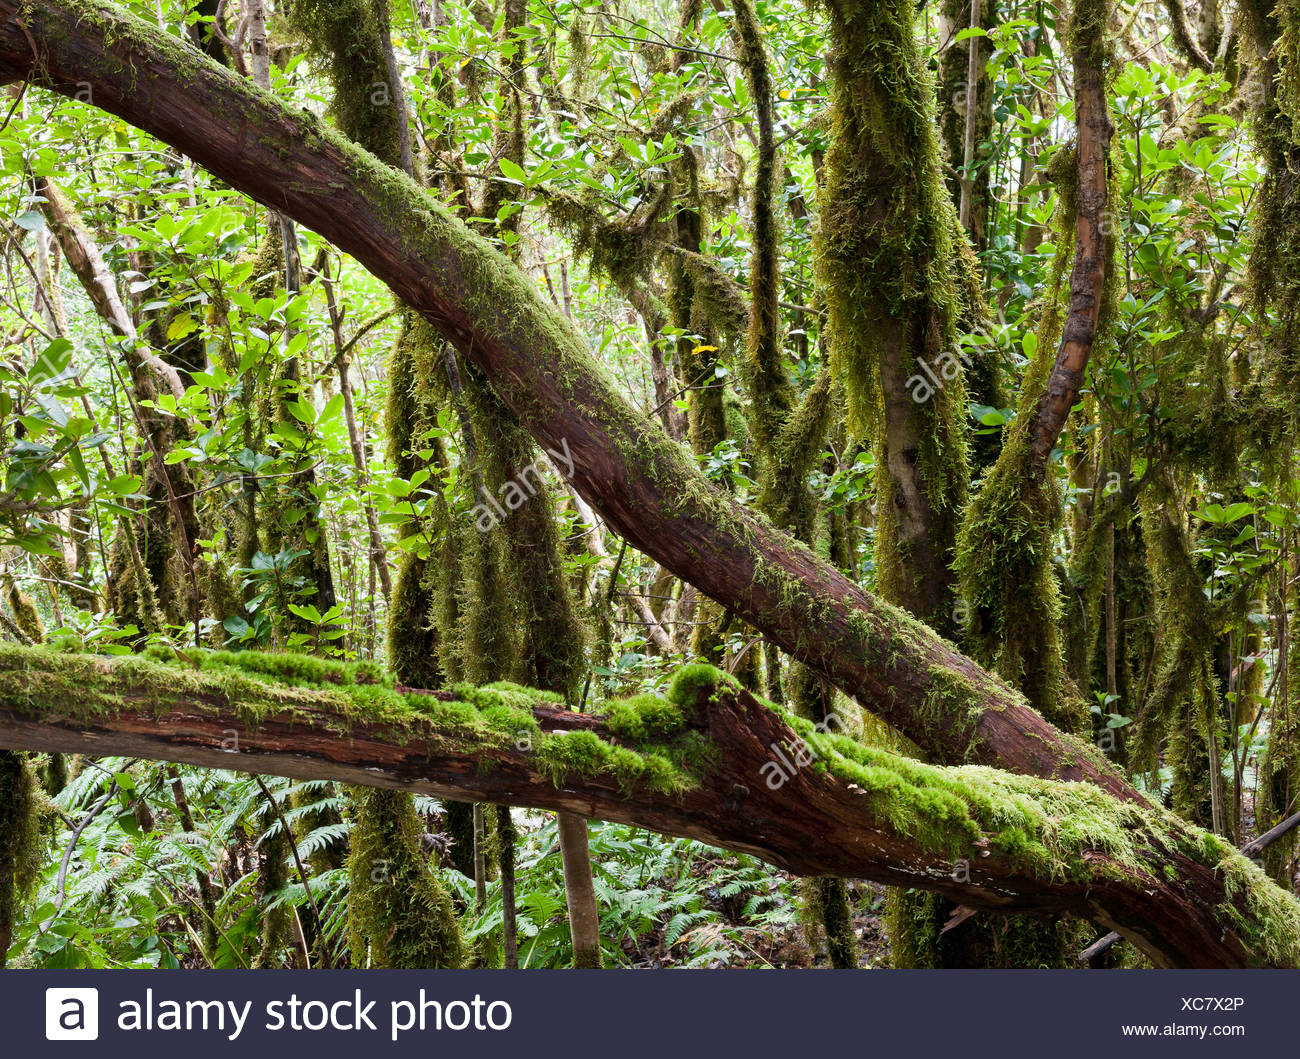 Tree covered in moss, primeval cloud forest near Charmorga, northeastern Tenerife, Tenerife, Canary Islands, Spain, Europe - Stock Image